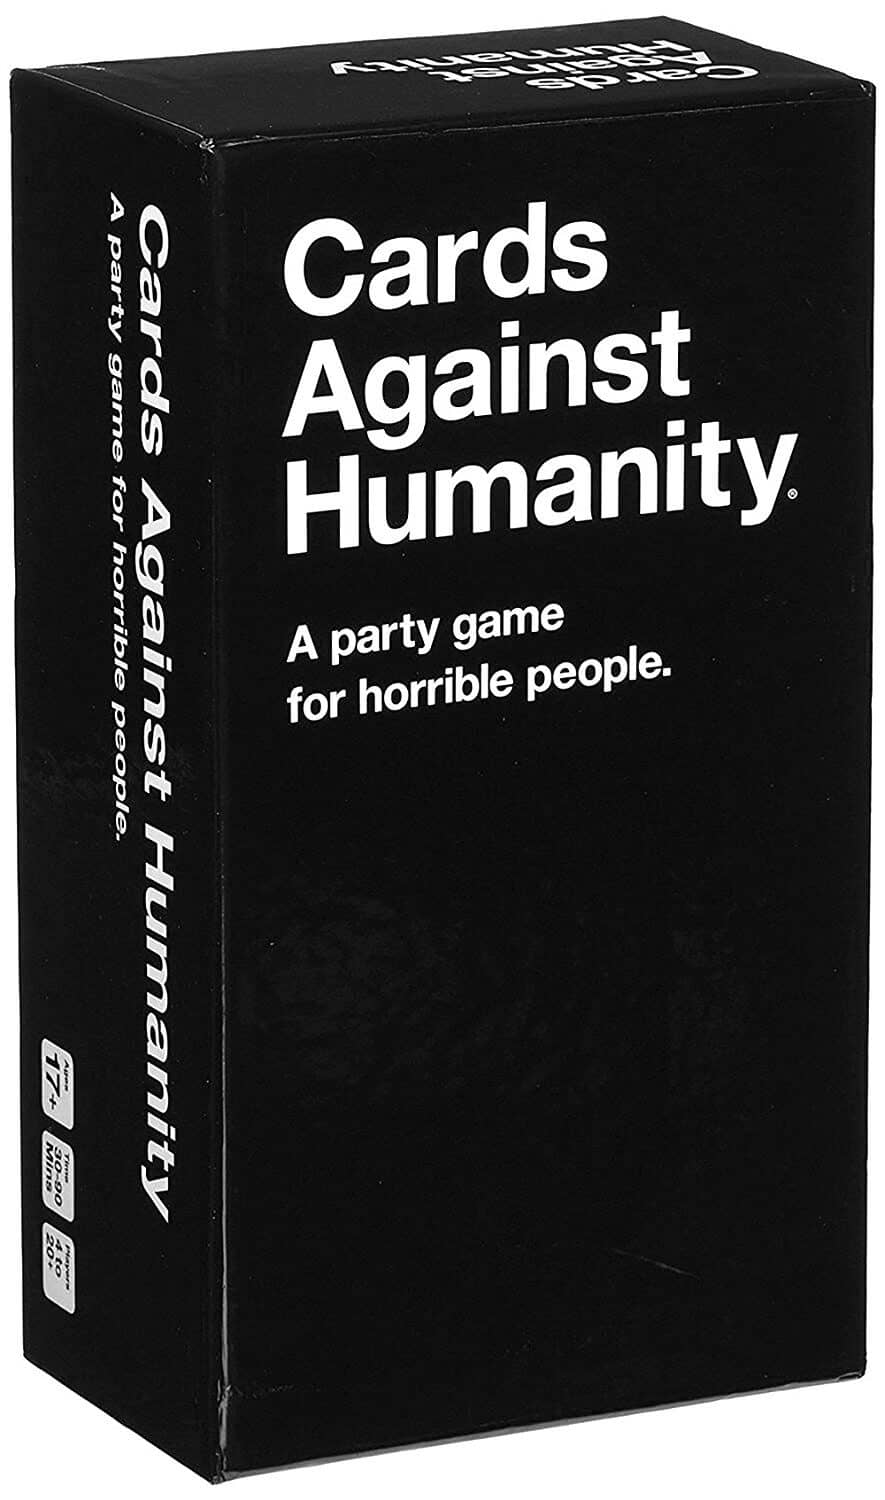 Cards Against Humanity: A party game for horrible people